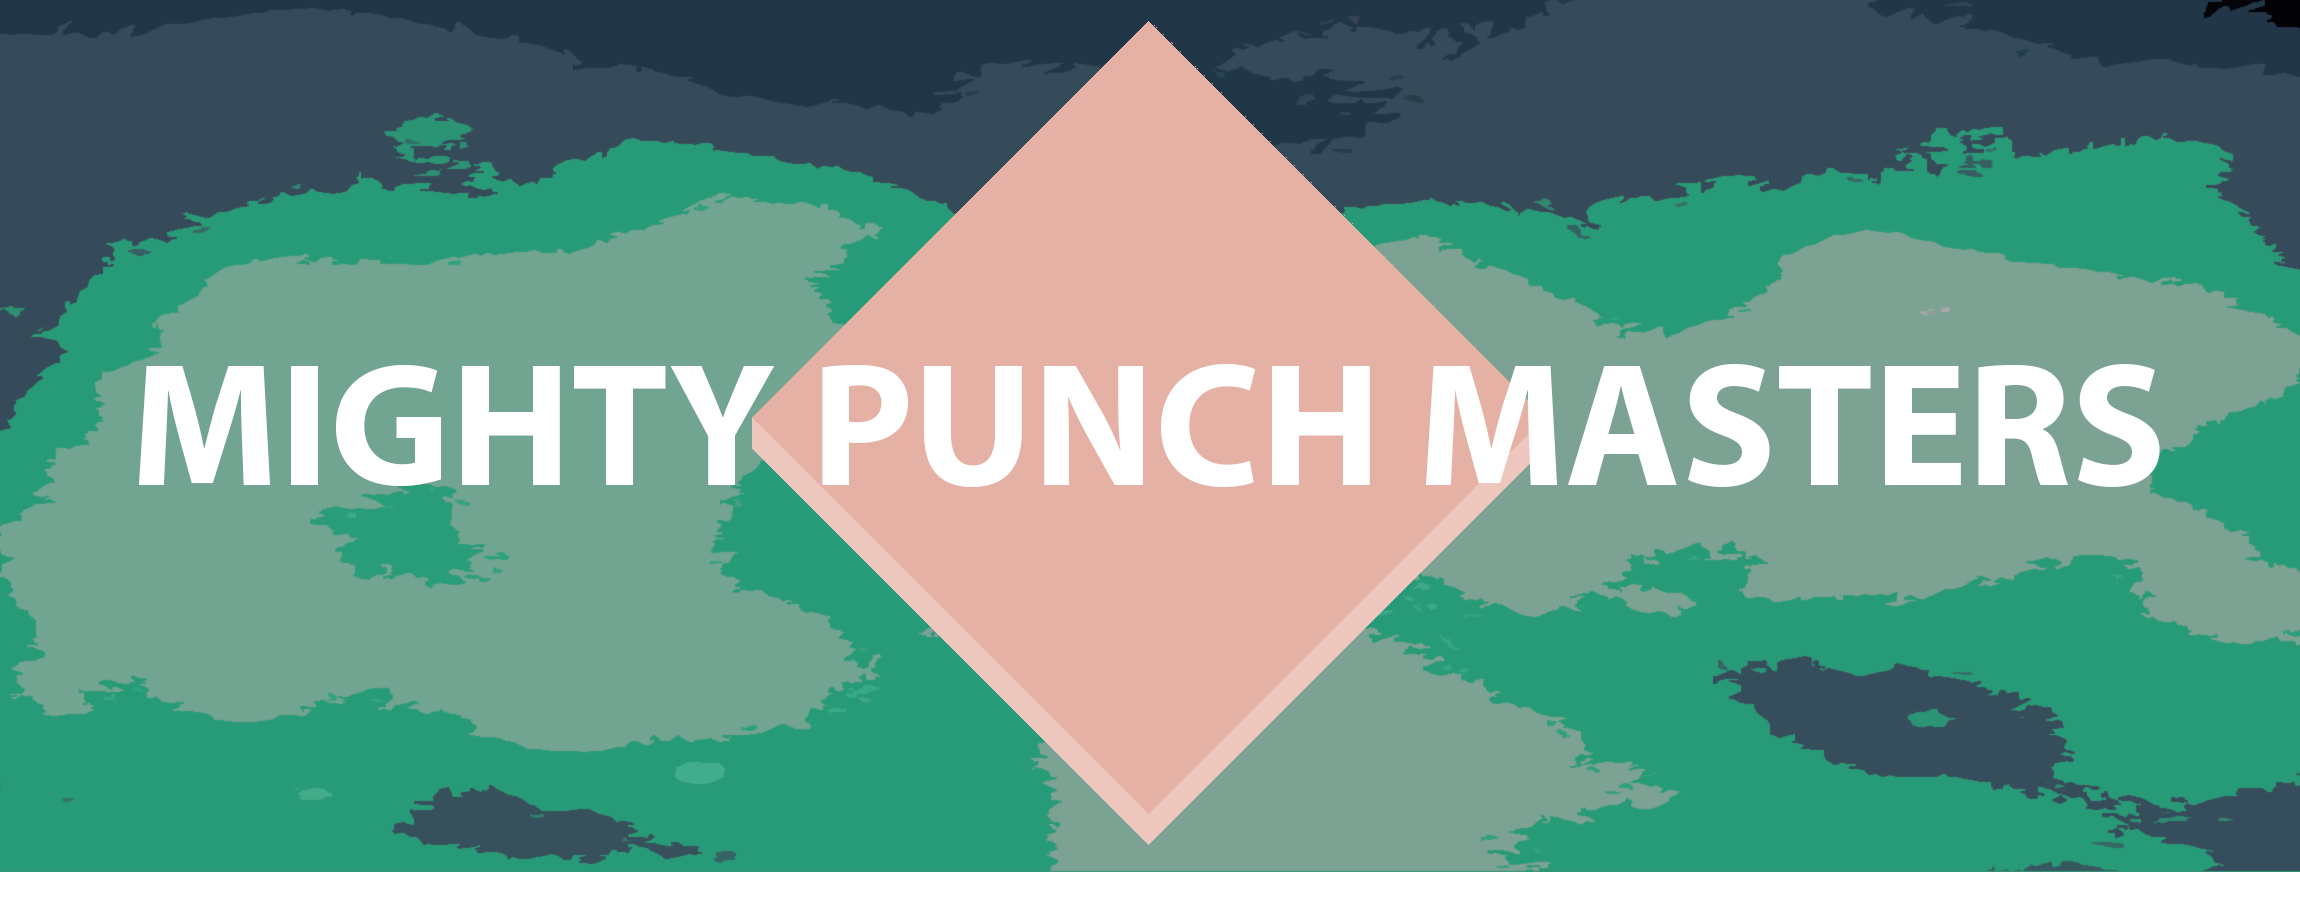 MightyPunchMasters